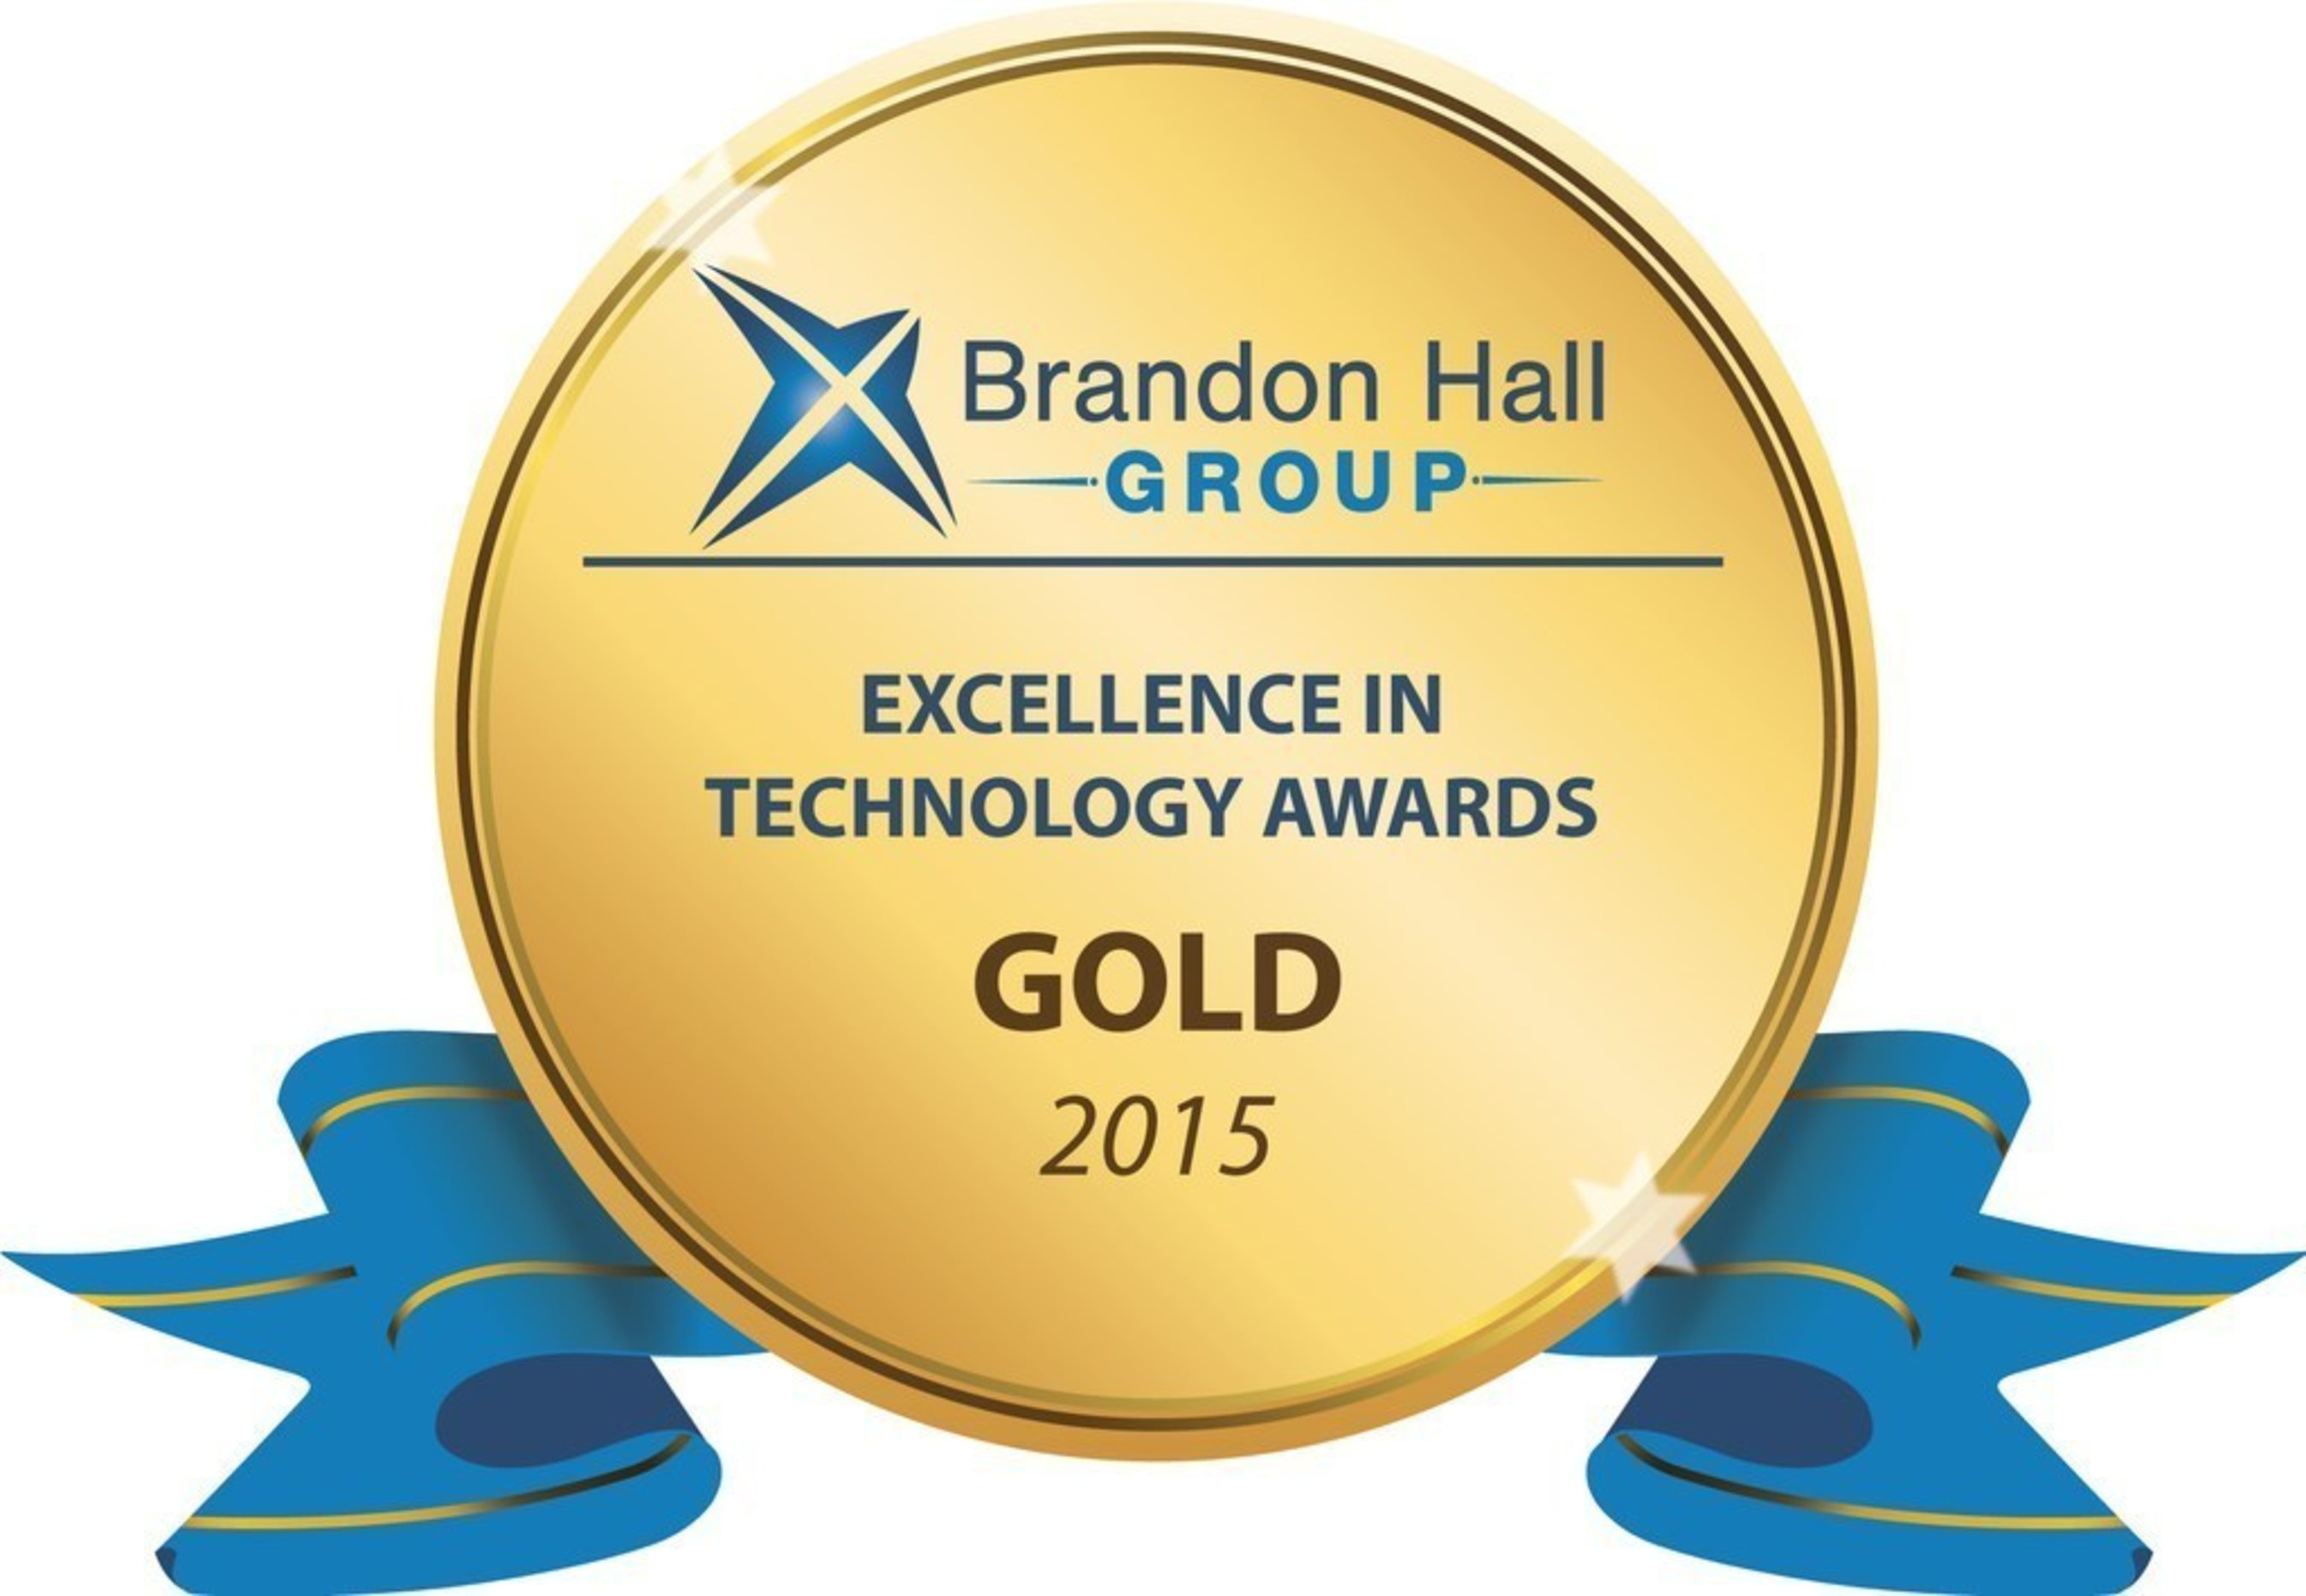 CALIPER Wins Gold Brandon Hall Group Excellence in Technology Award